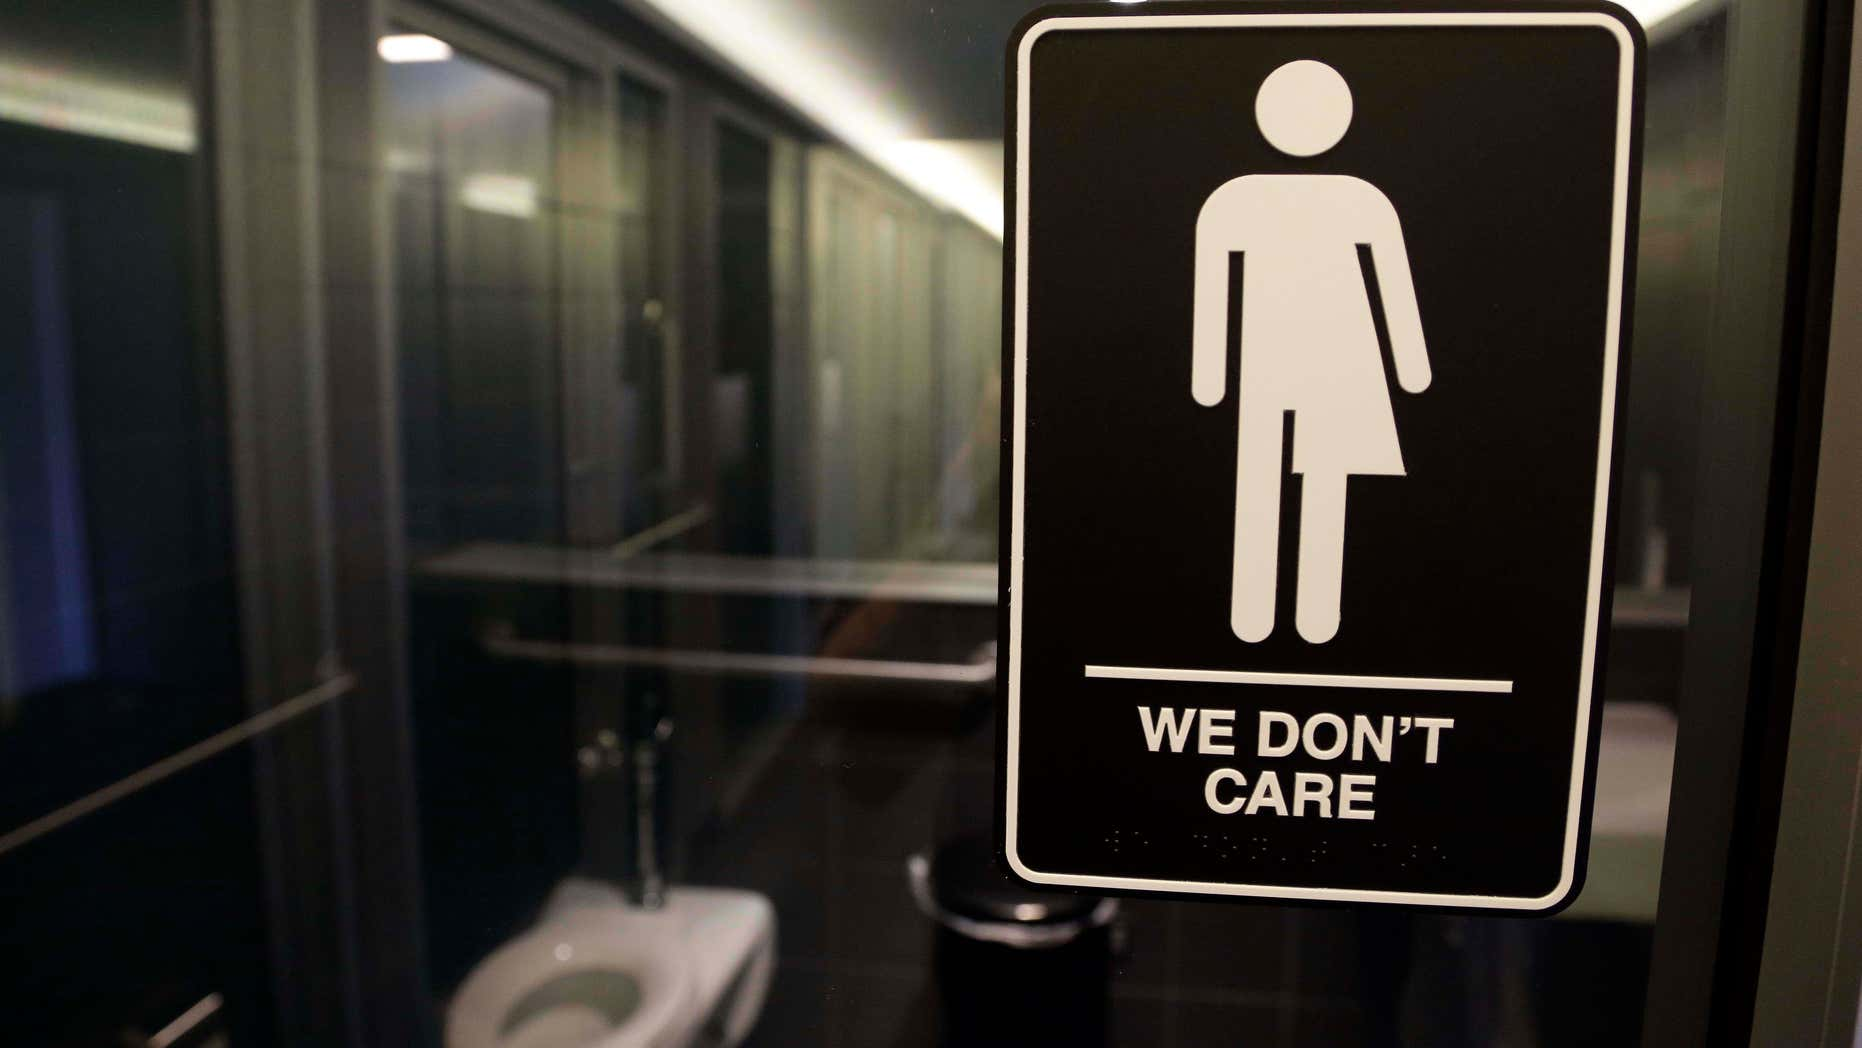 In this Thursday, May 12, 2016 file photo, signage is seen outside a restroom at 21c Museum Hotel in Durham, N.C.